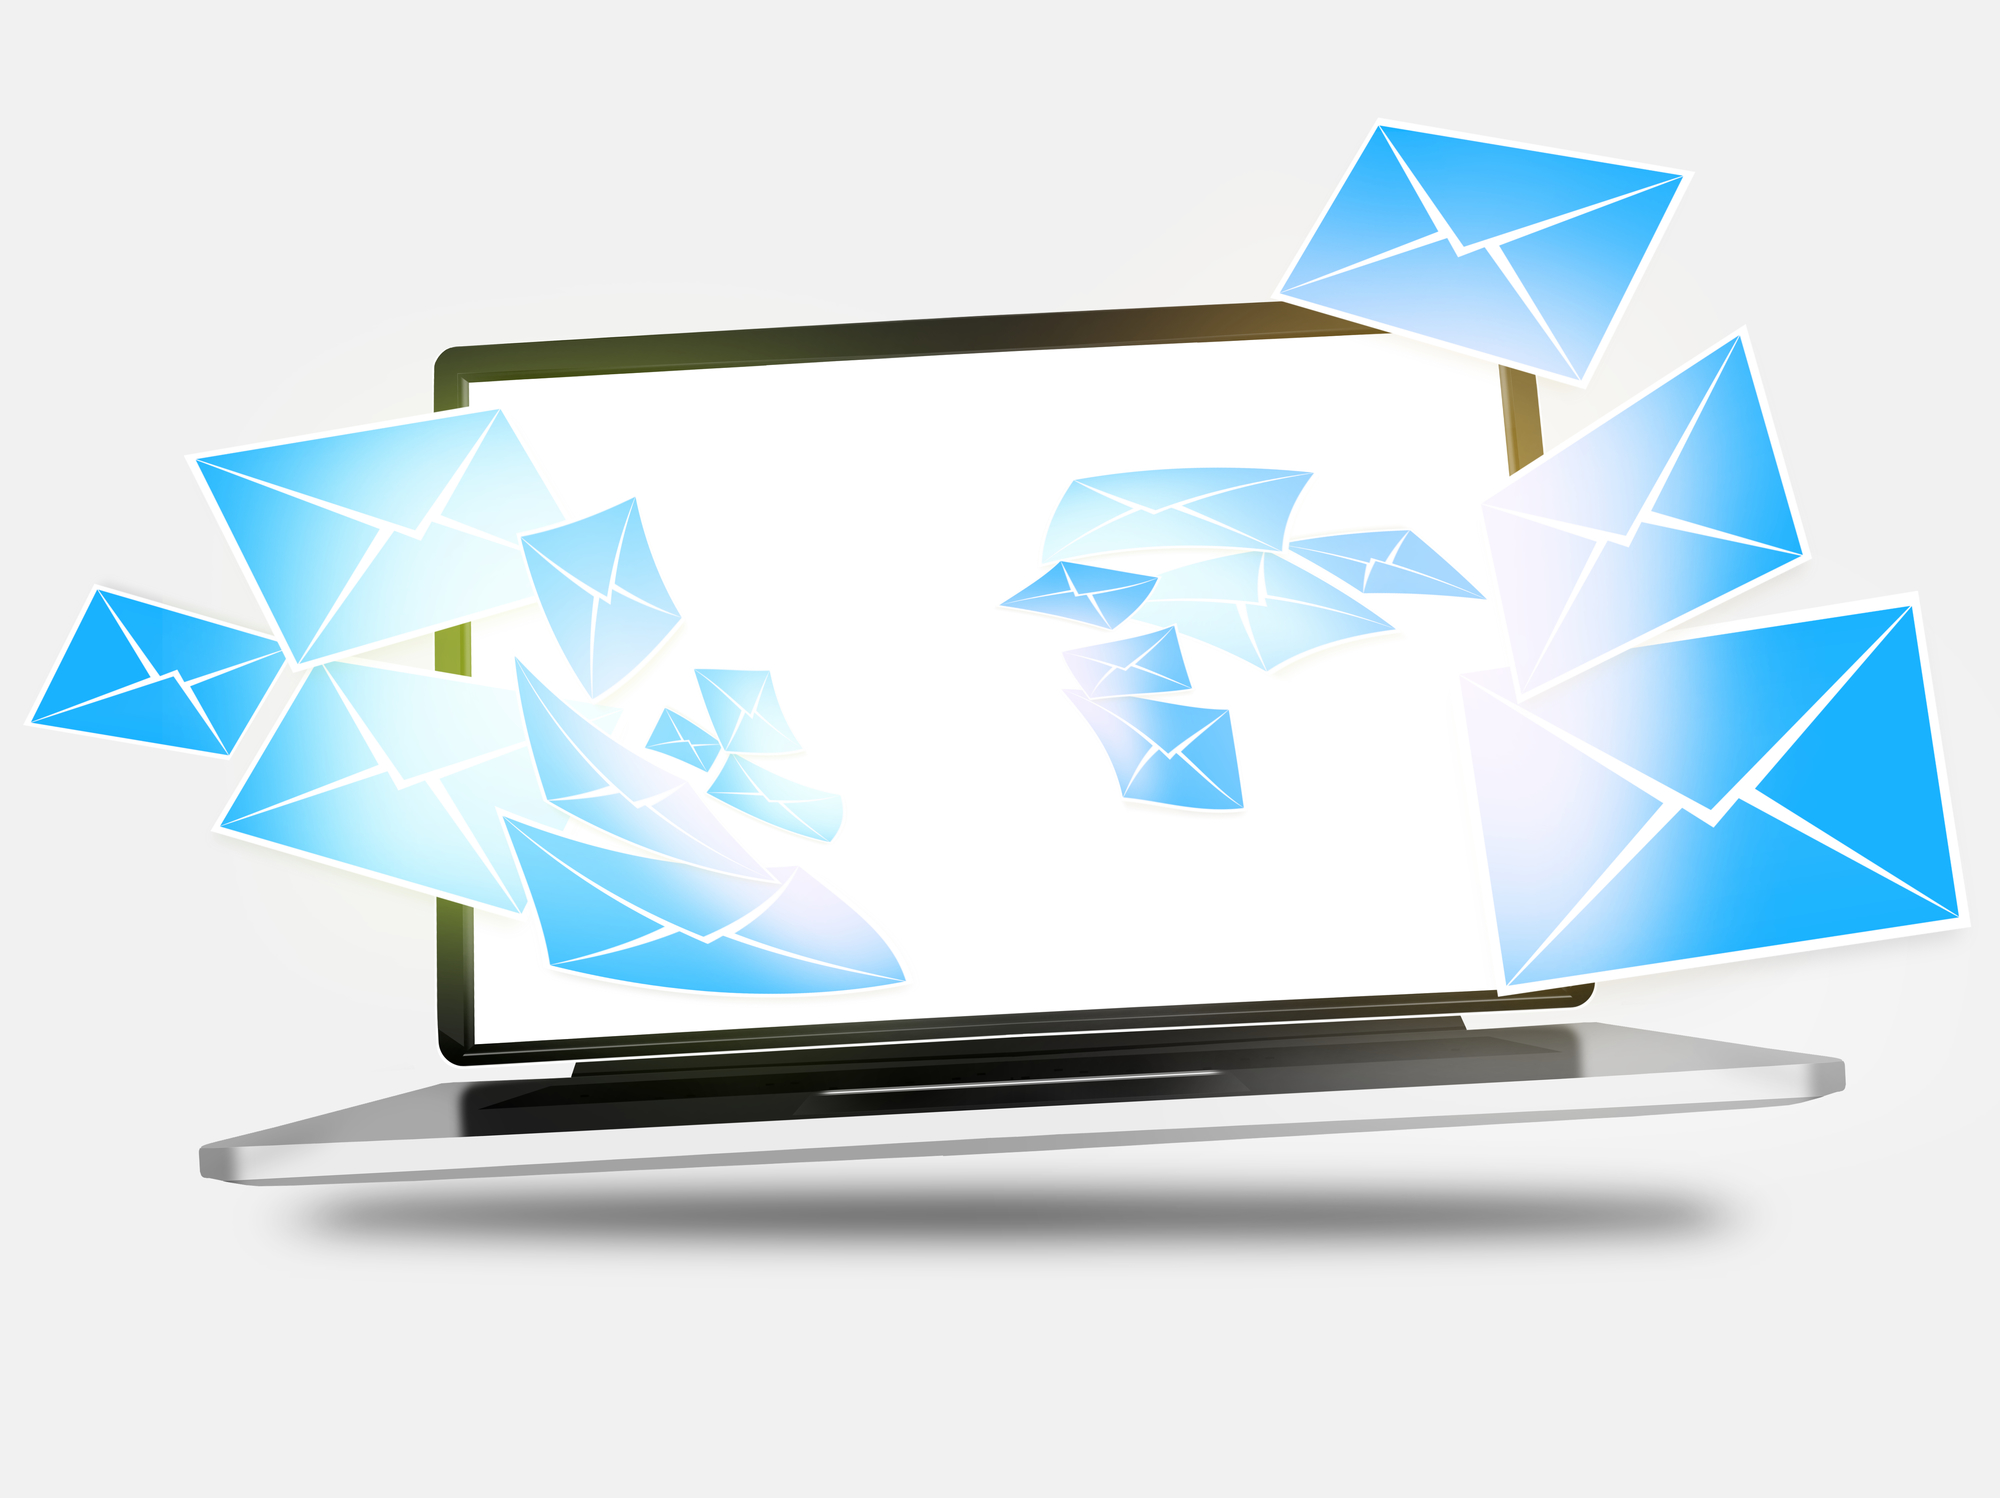 How To Avail Of A Virtual Mailbox Service With Online Viewing Capabilities